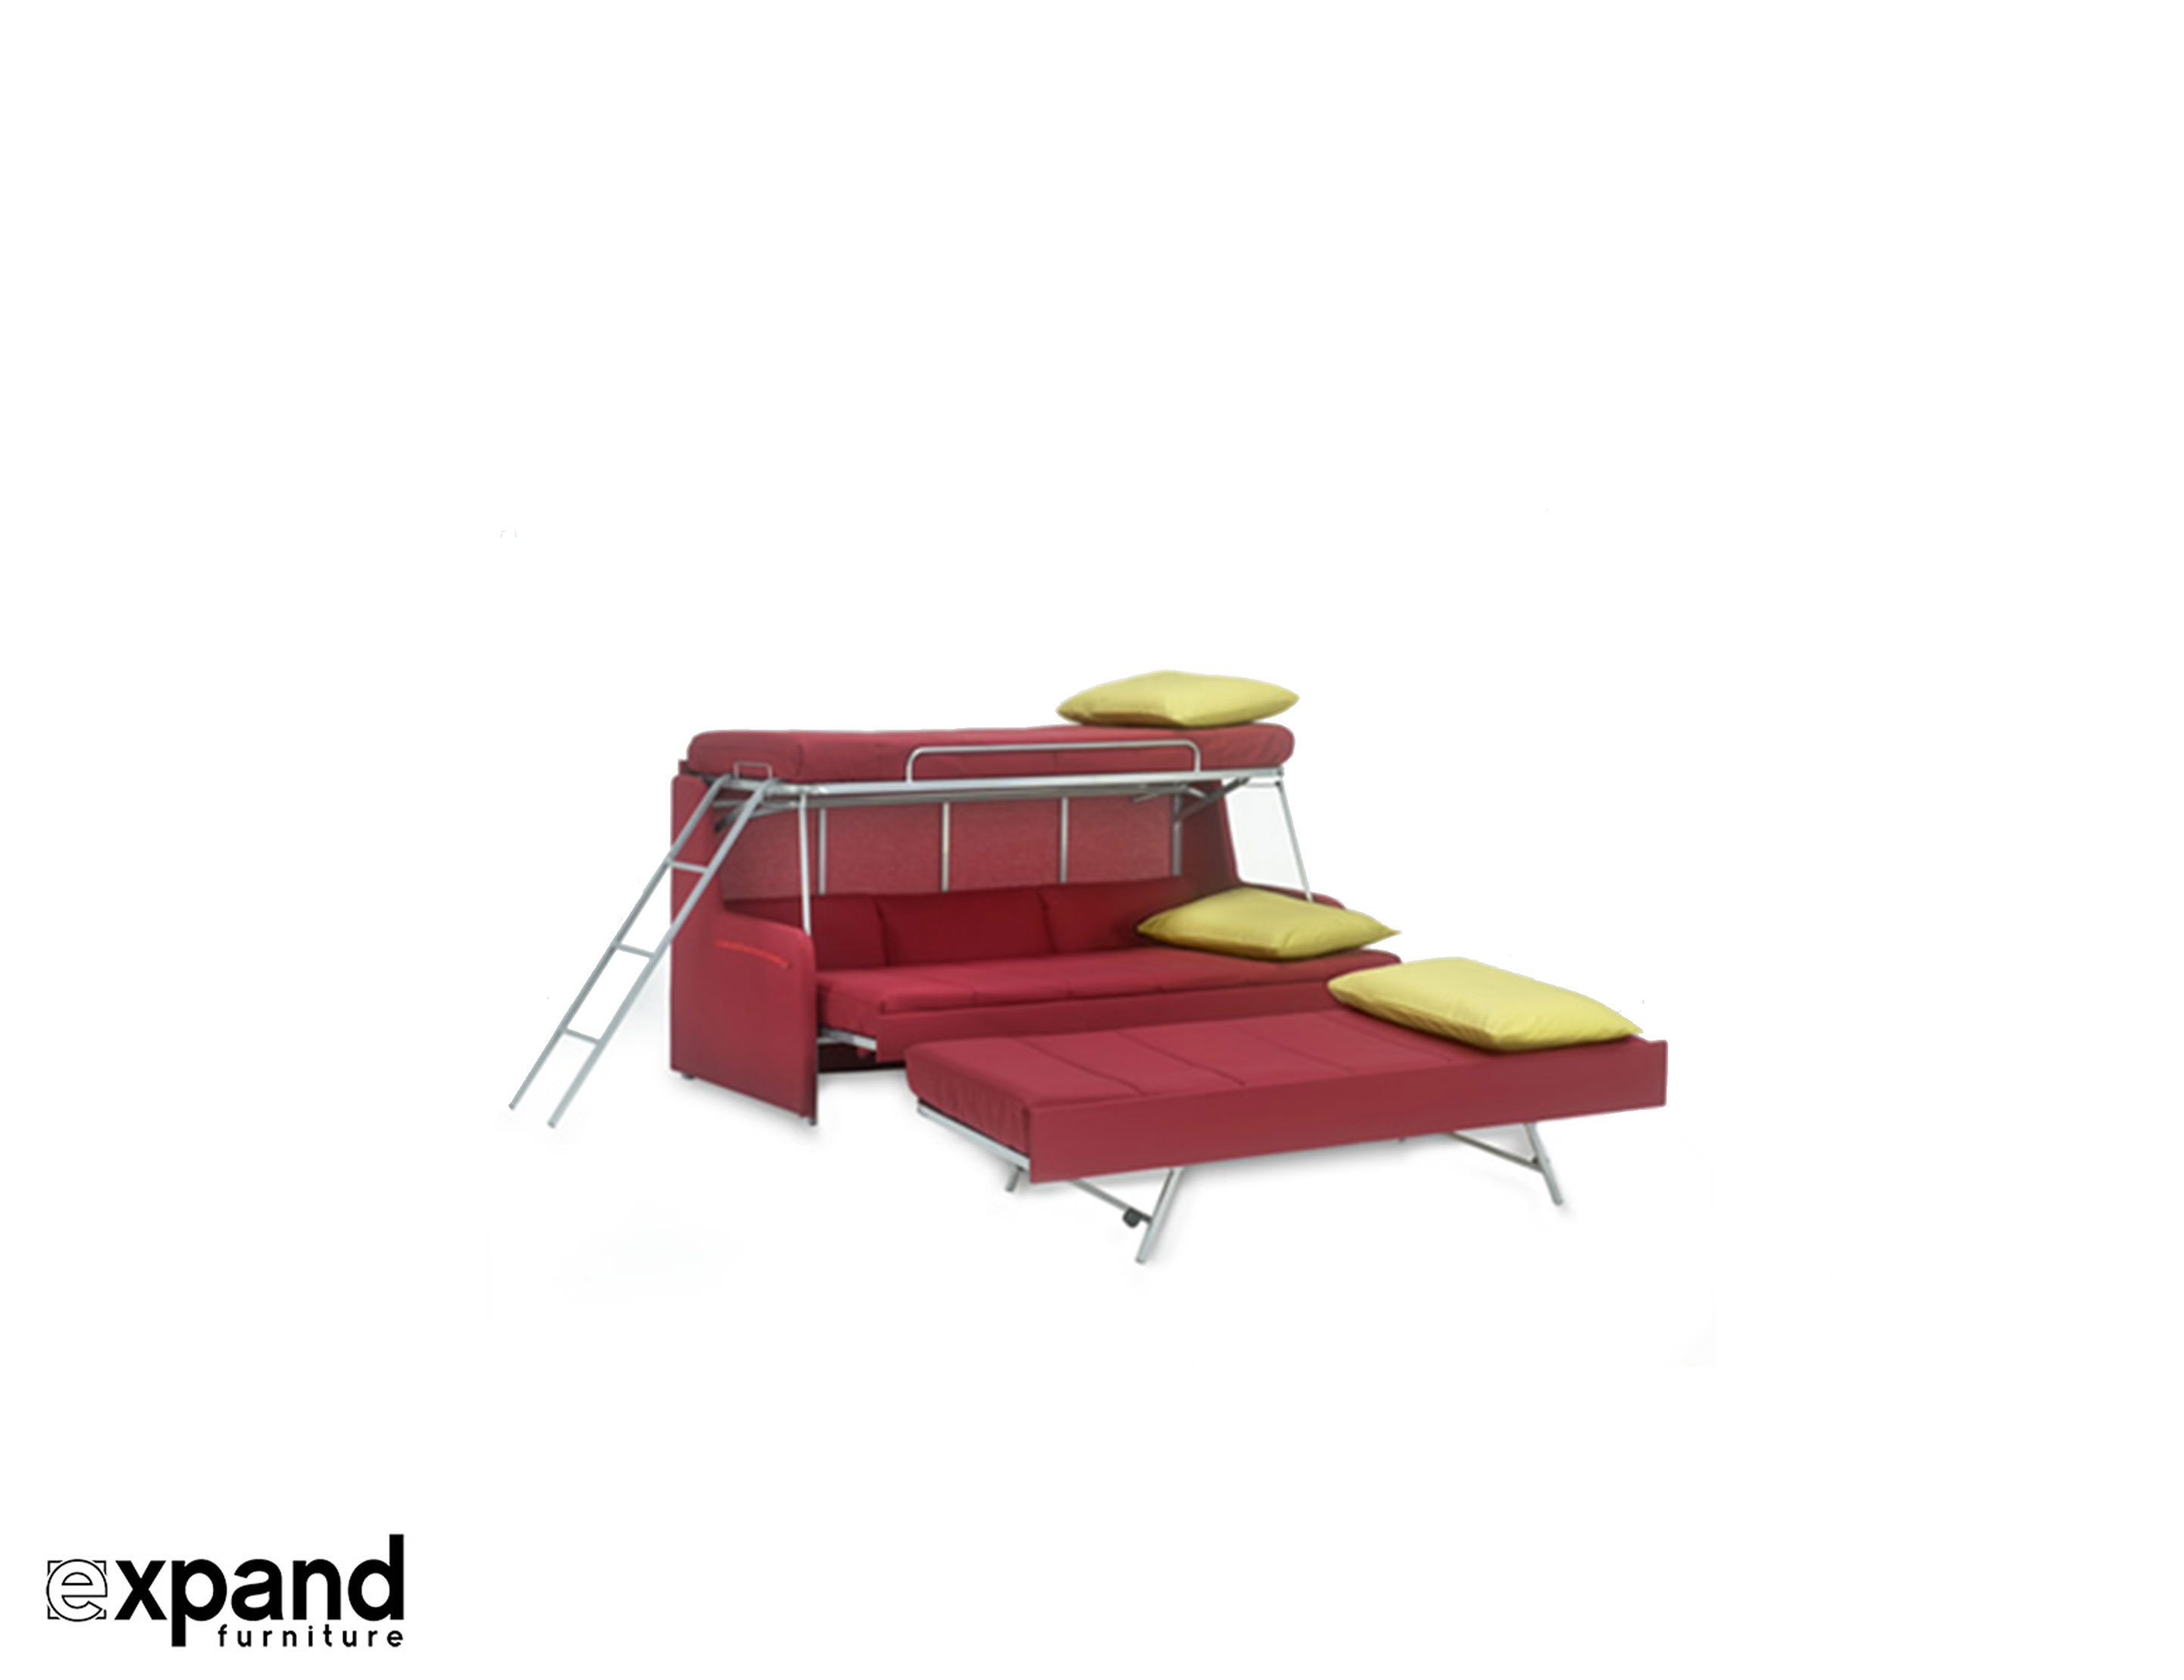 Chair That Turns Into Bed Transforming Sofa Bunk Bed Expand Furniture